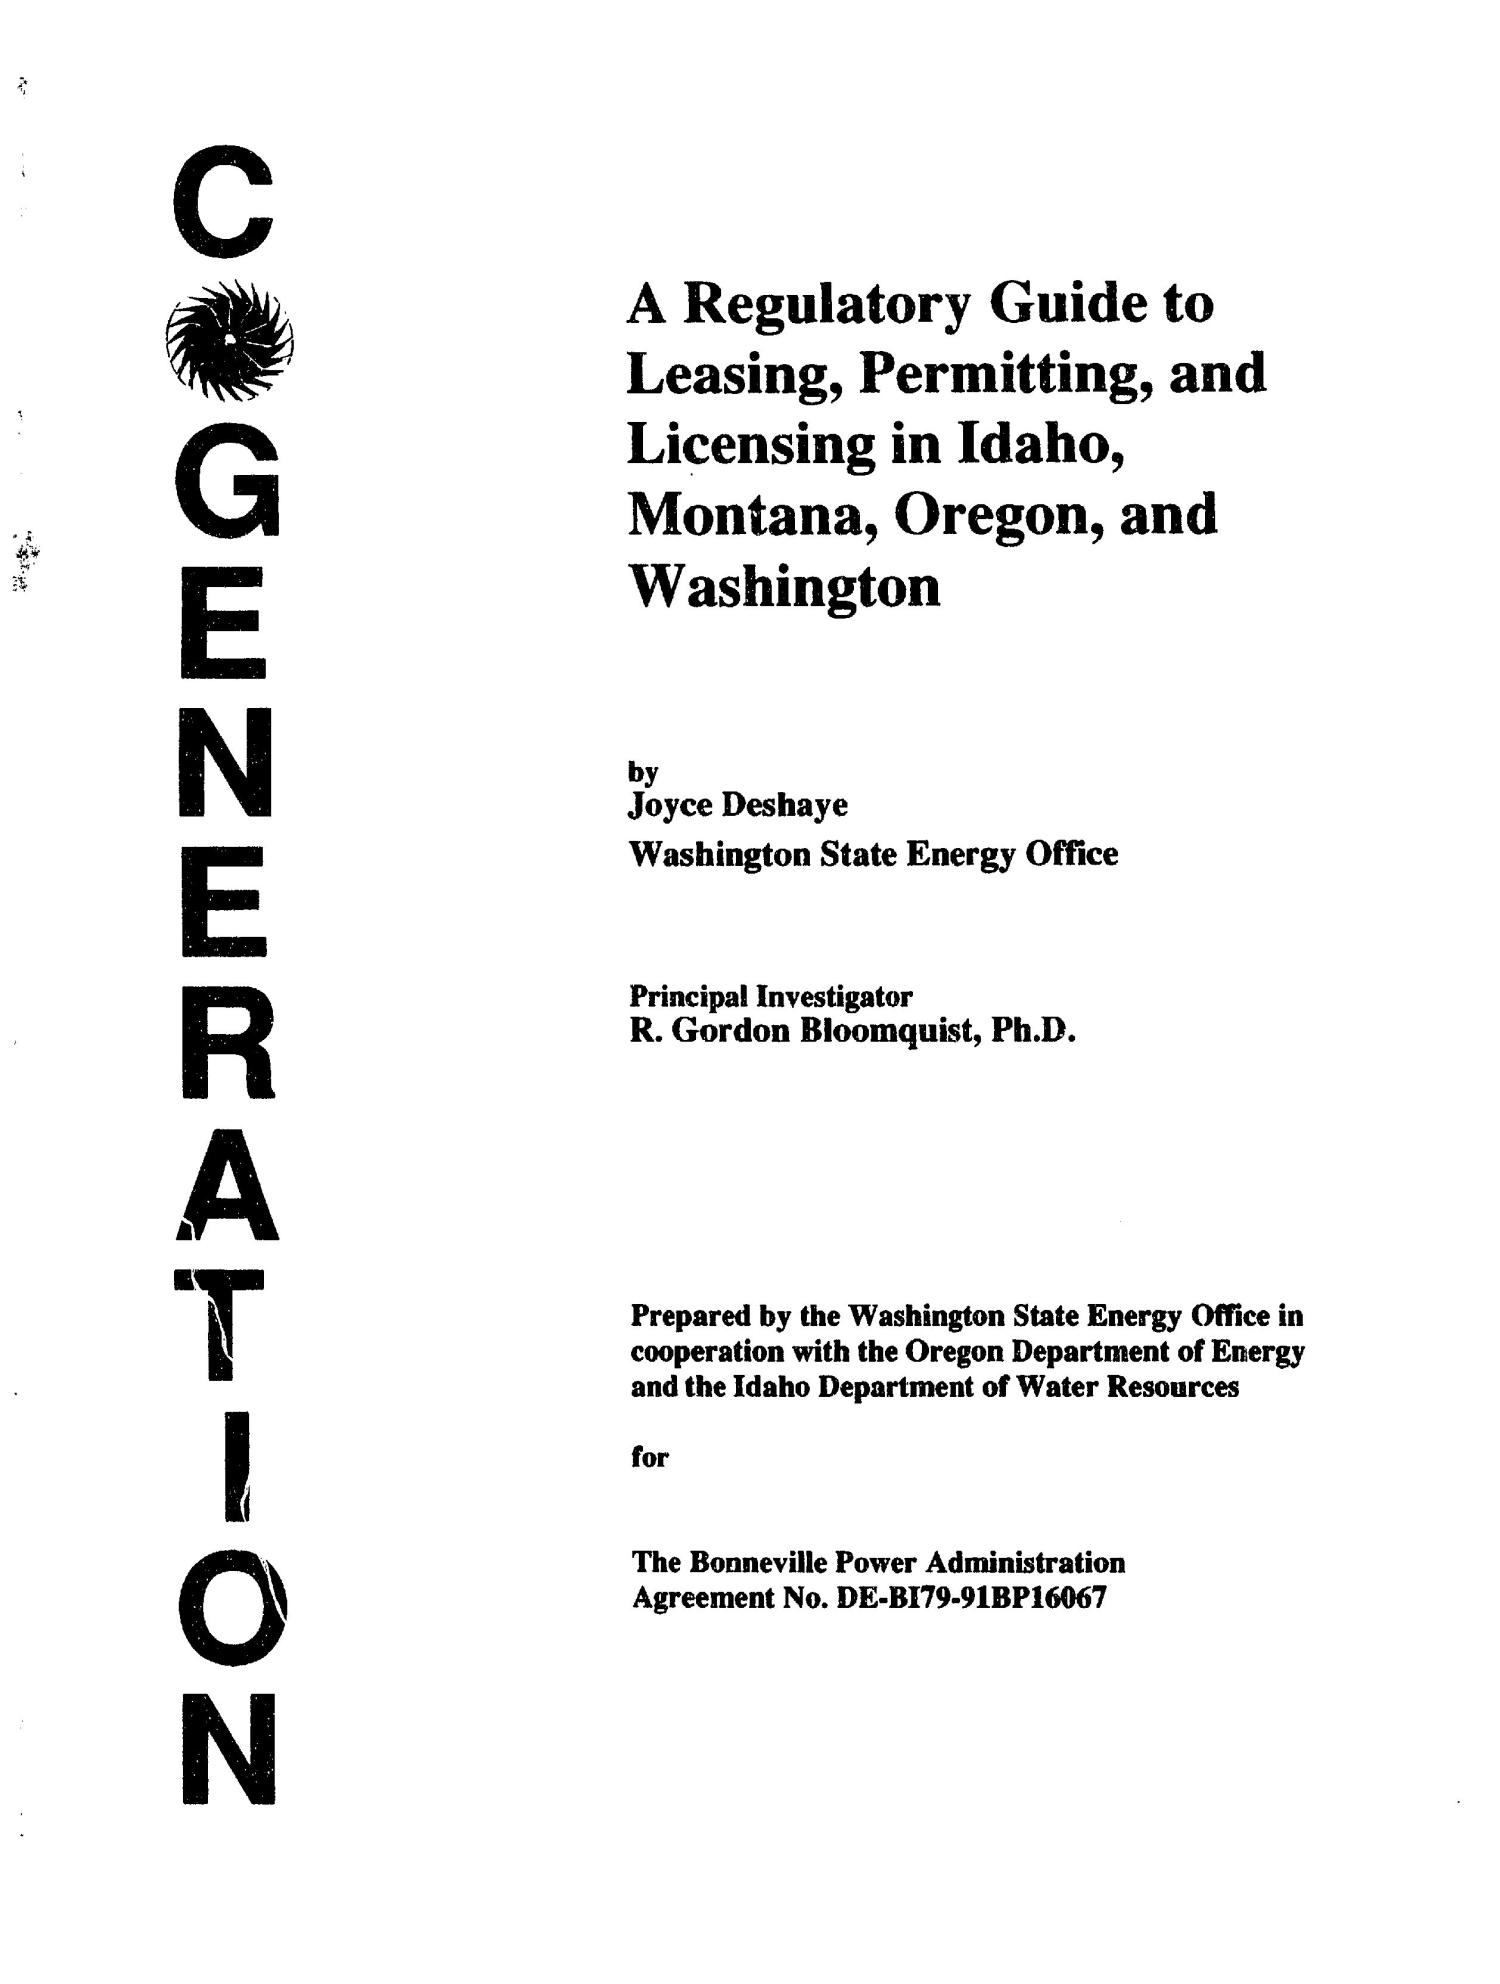 Cogeneration : A Regulatory Guide to Leasing, Permitting, and Licensing in Idaho, Montana, Oregon, and Washington.                                                                                                      [Sequence #]: 1 of 232